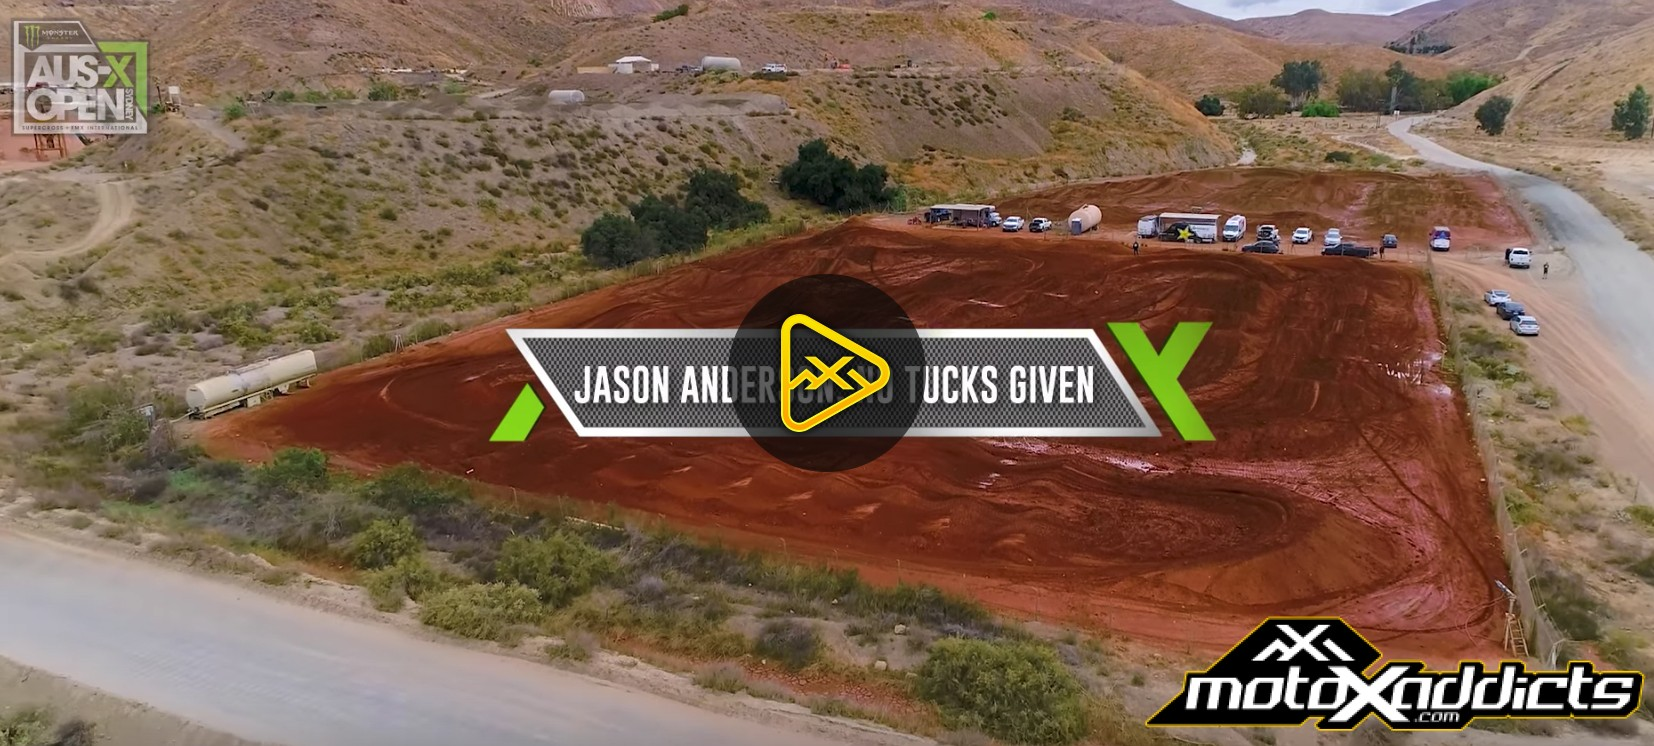 Jason Anderson: No Tucks Given | The Road To AUS-X Open